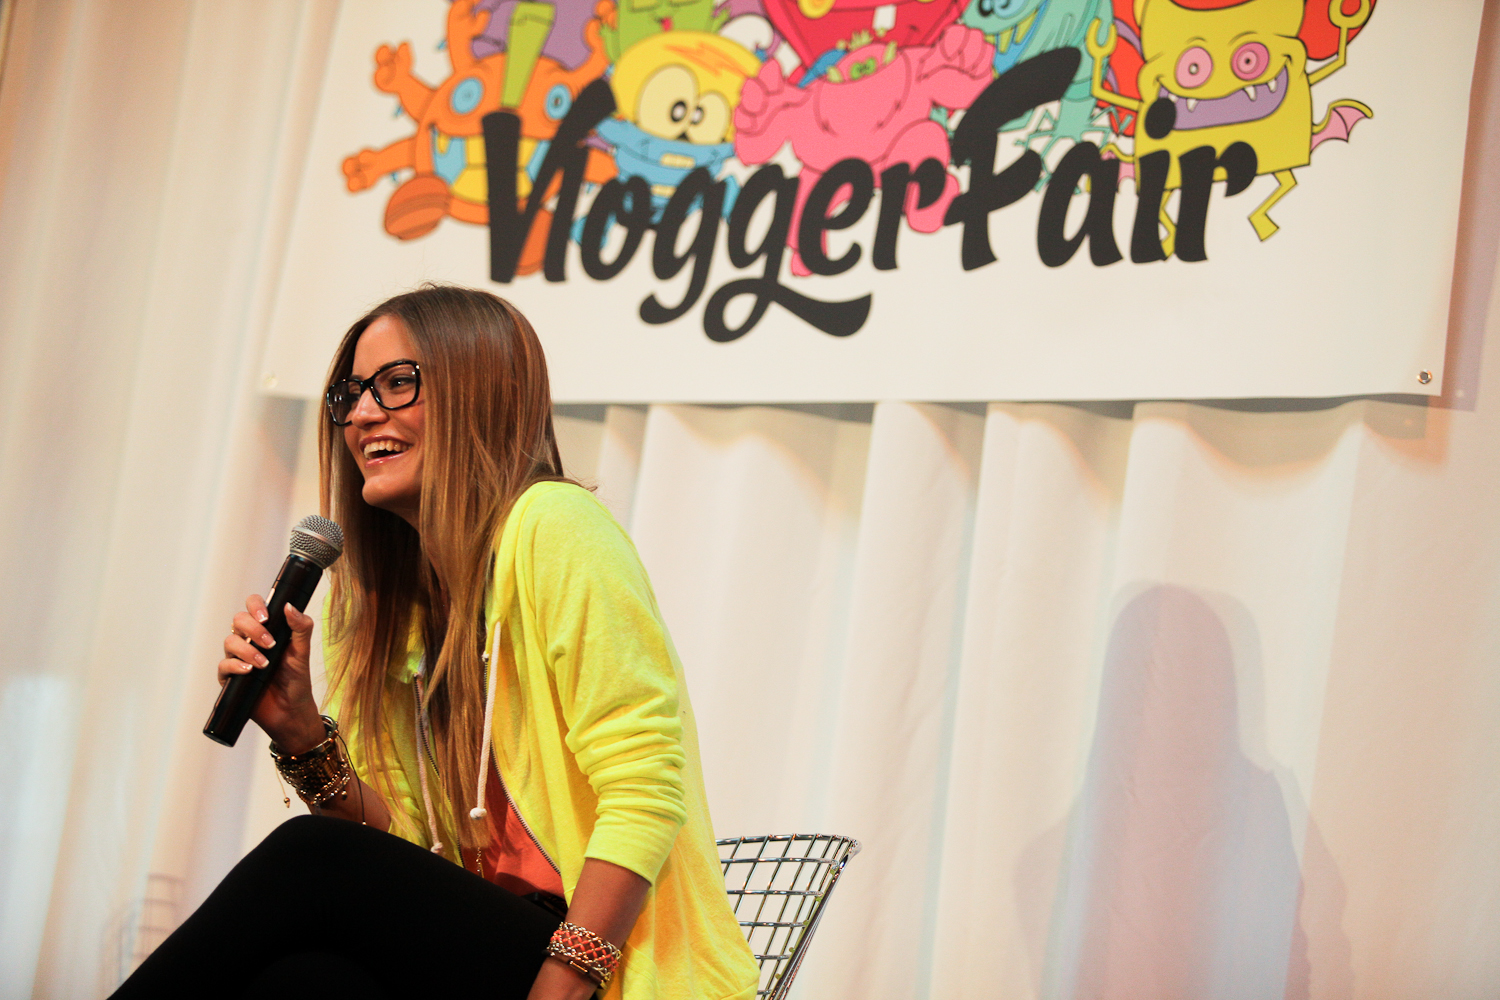 Justine Ezarik, better known as iJustine at the first ever Vlogger Fair in Seattle Saturday June 8 at the Port of Seattle Terminal 5.